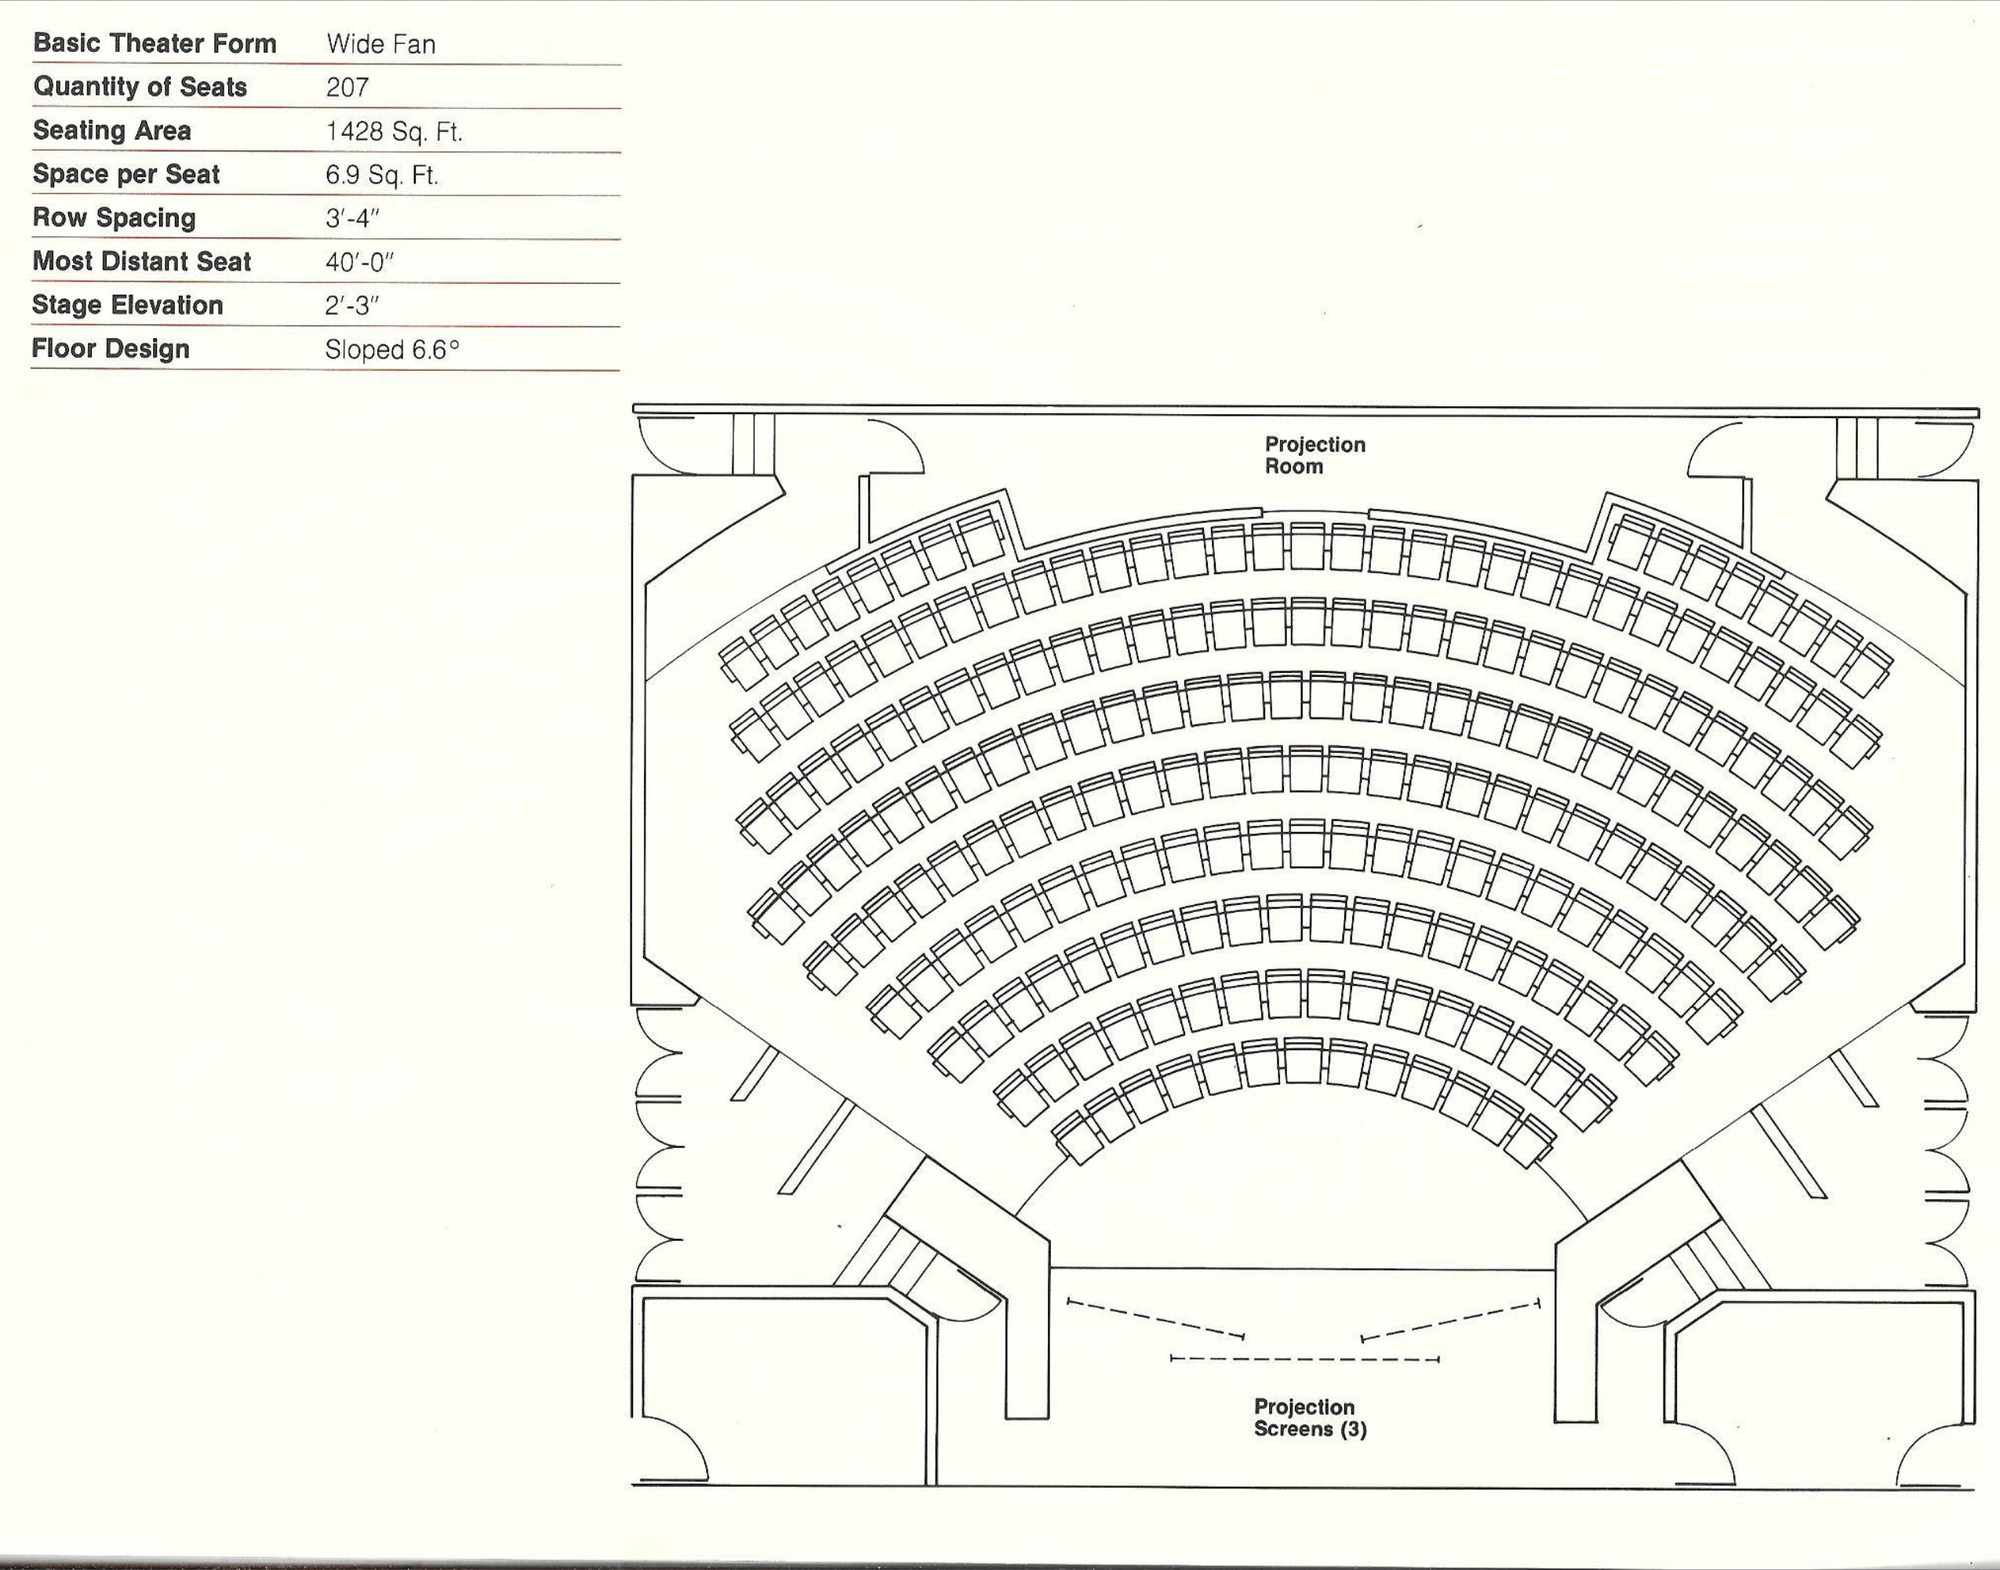 21 Seating Layout Examples TSI 14?1479293637 how to design theater seating, shown through 21 detailed example